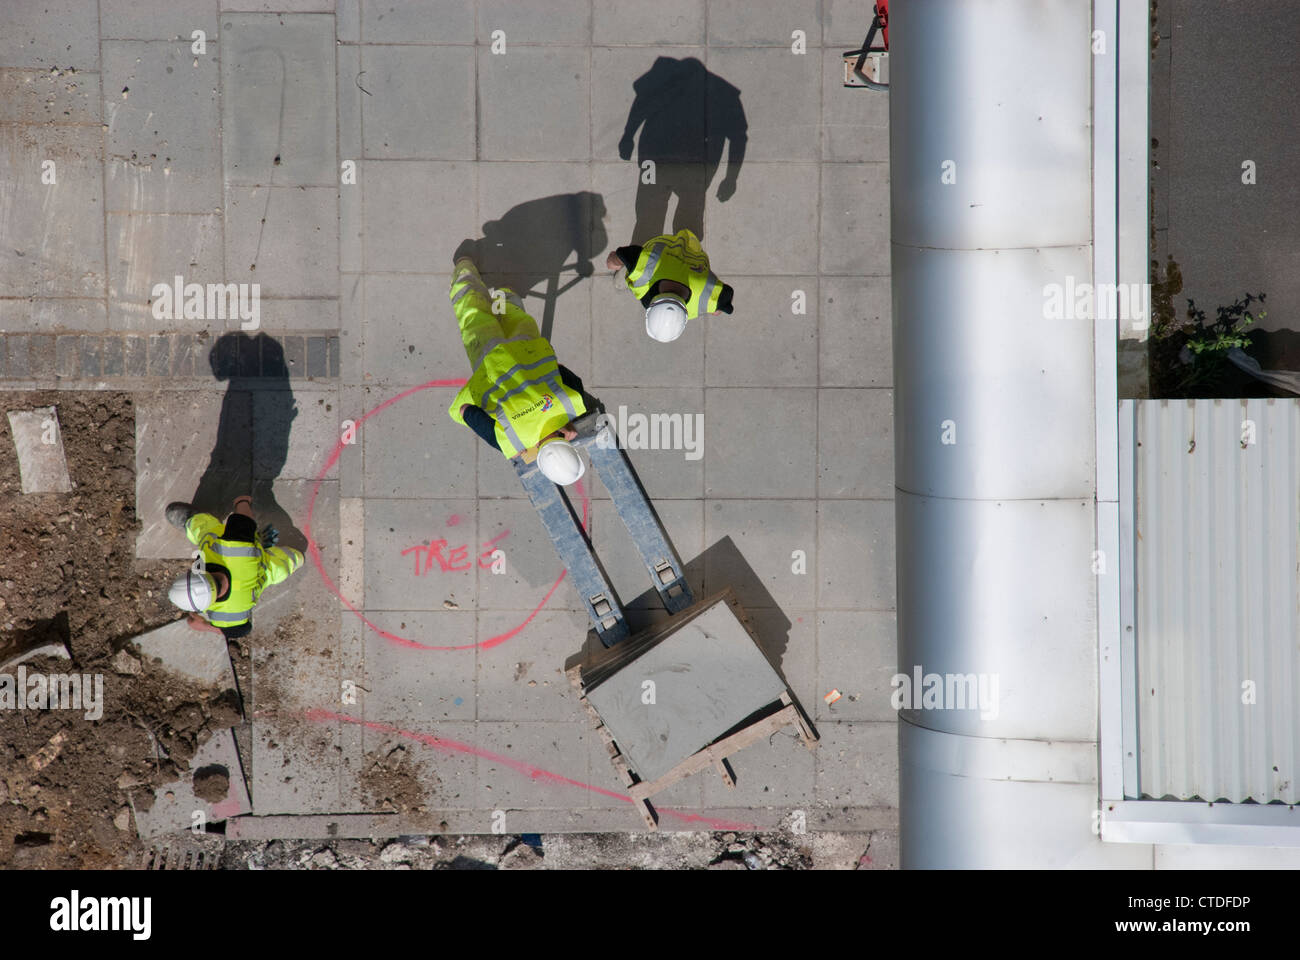 britannia construction contractors working on the pedestrianisation project on Swindon railway station forecourt. - Stock Image